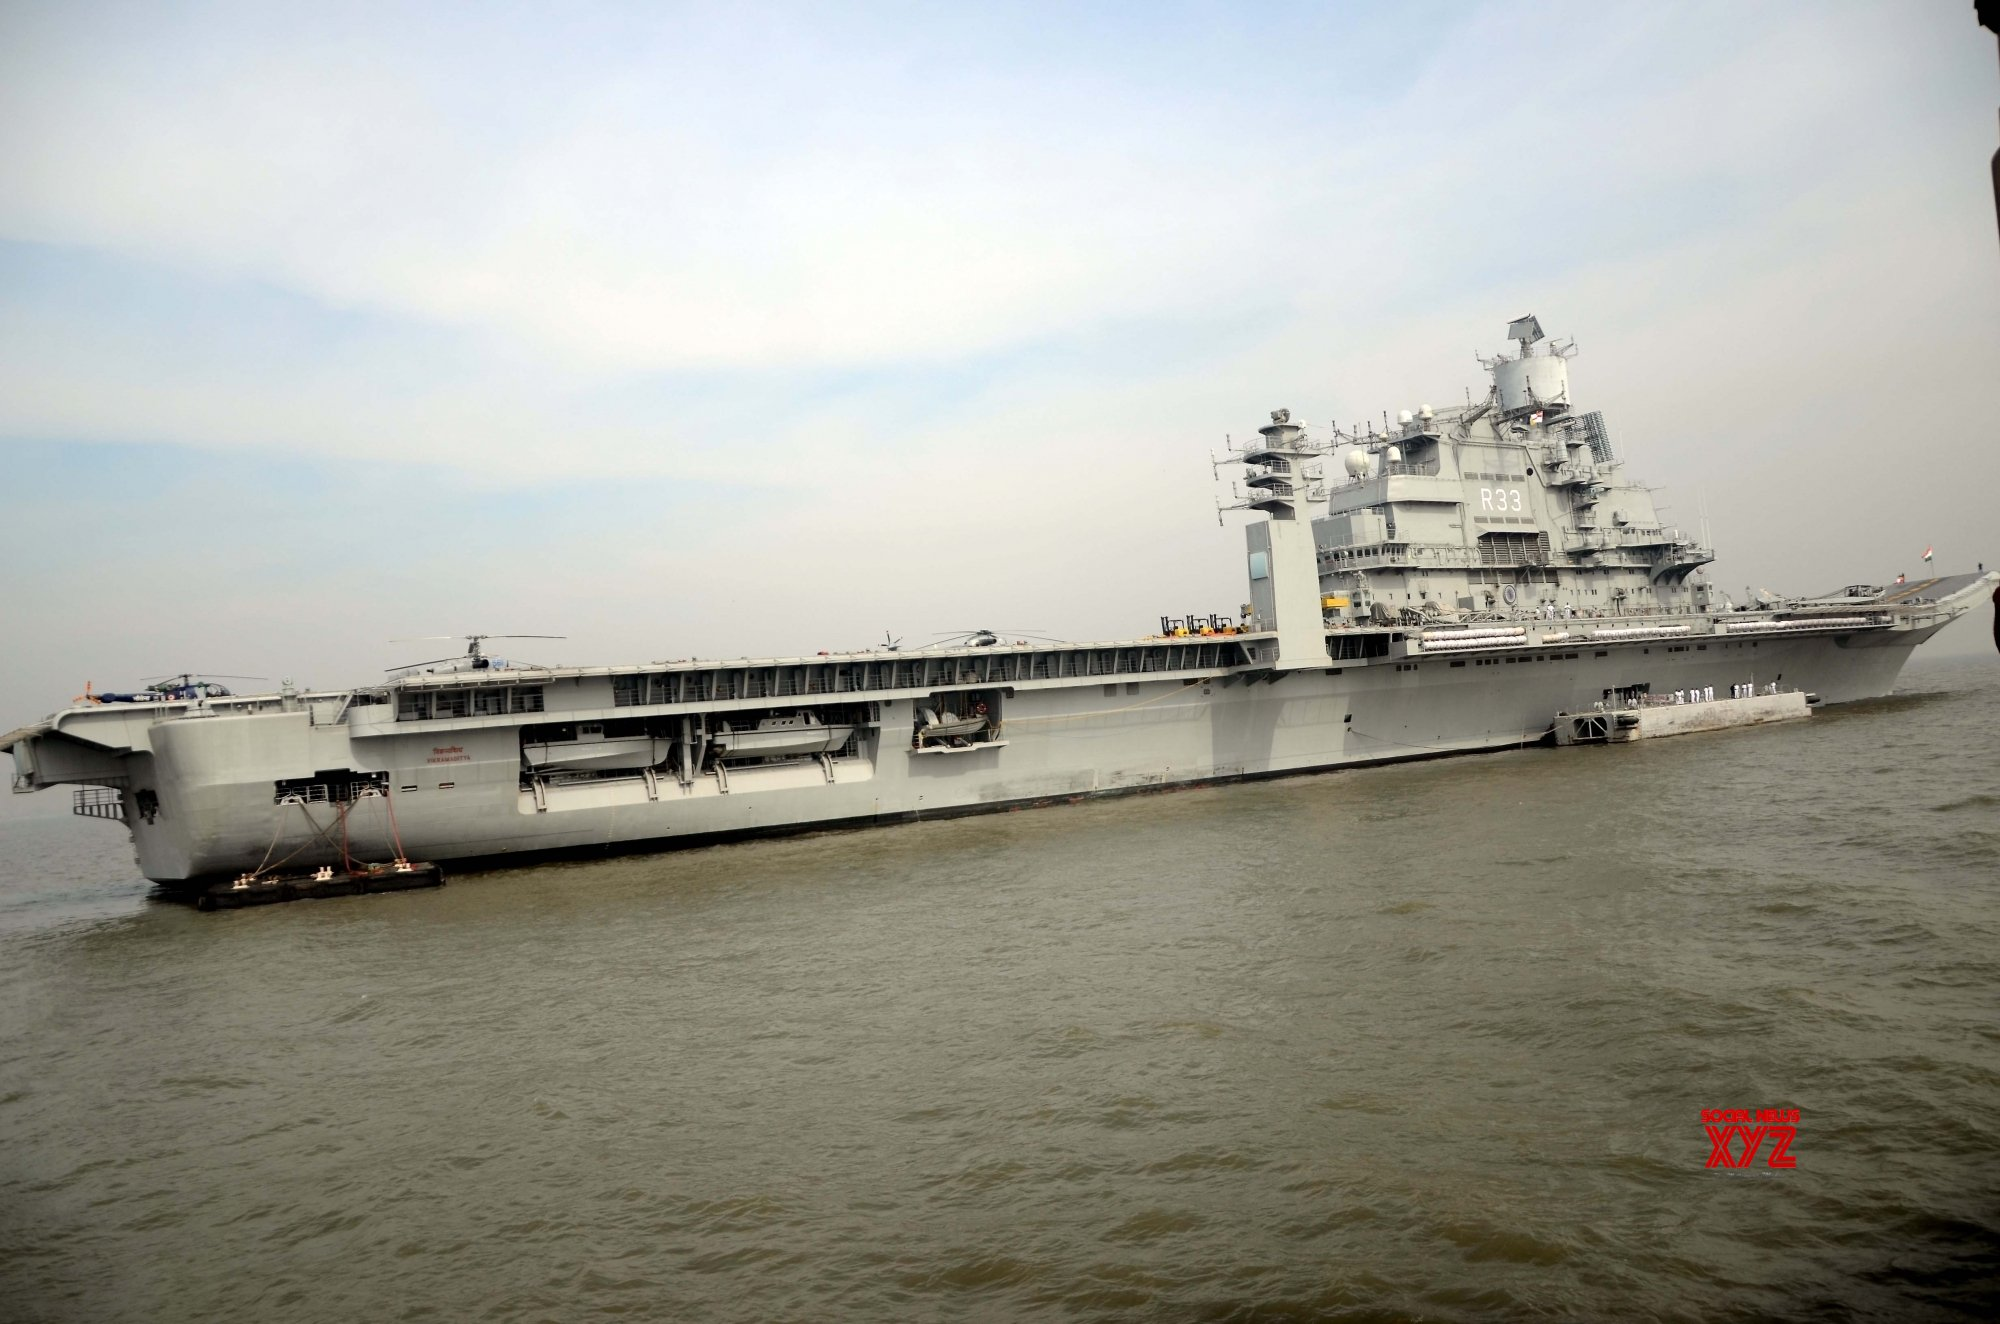 Aircraft carrier, nuke sub used to deter Pakistan